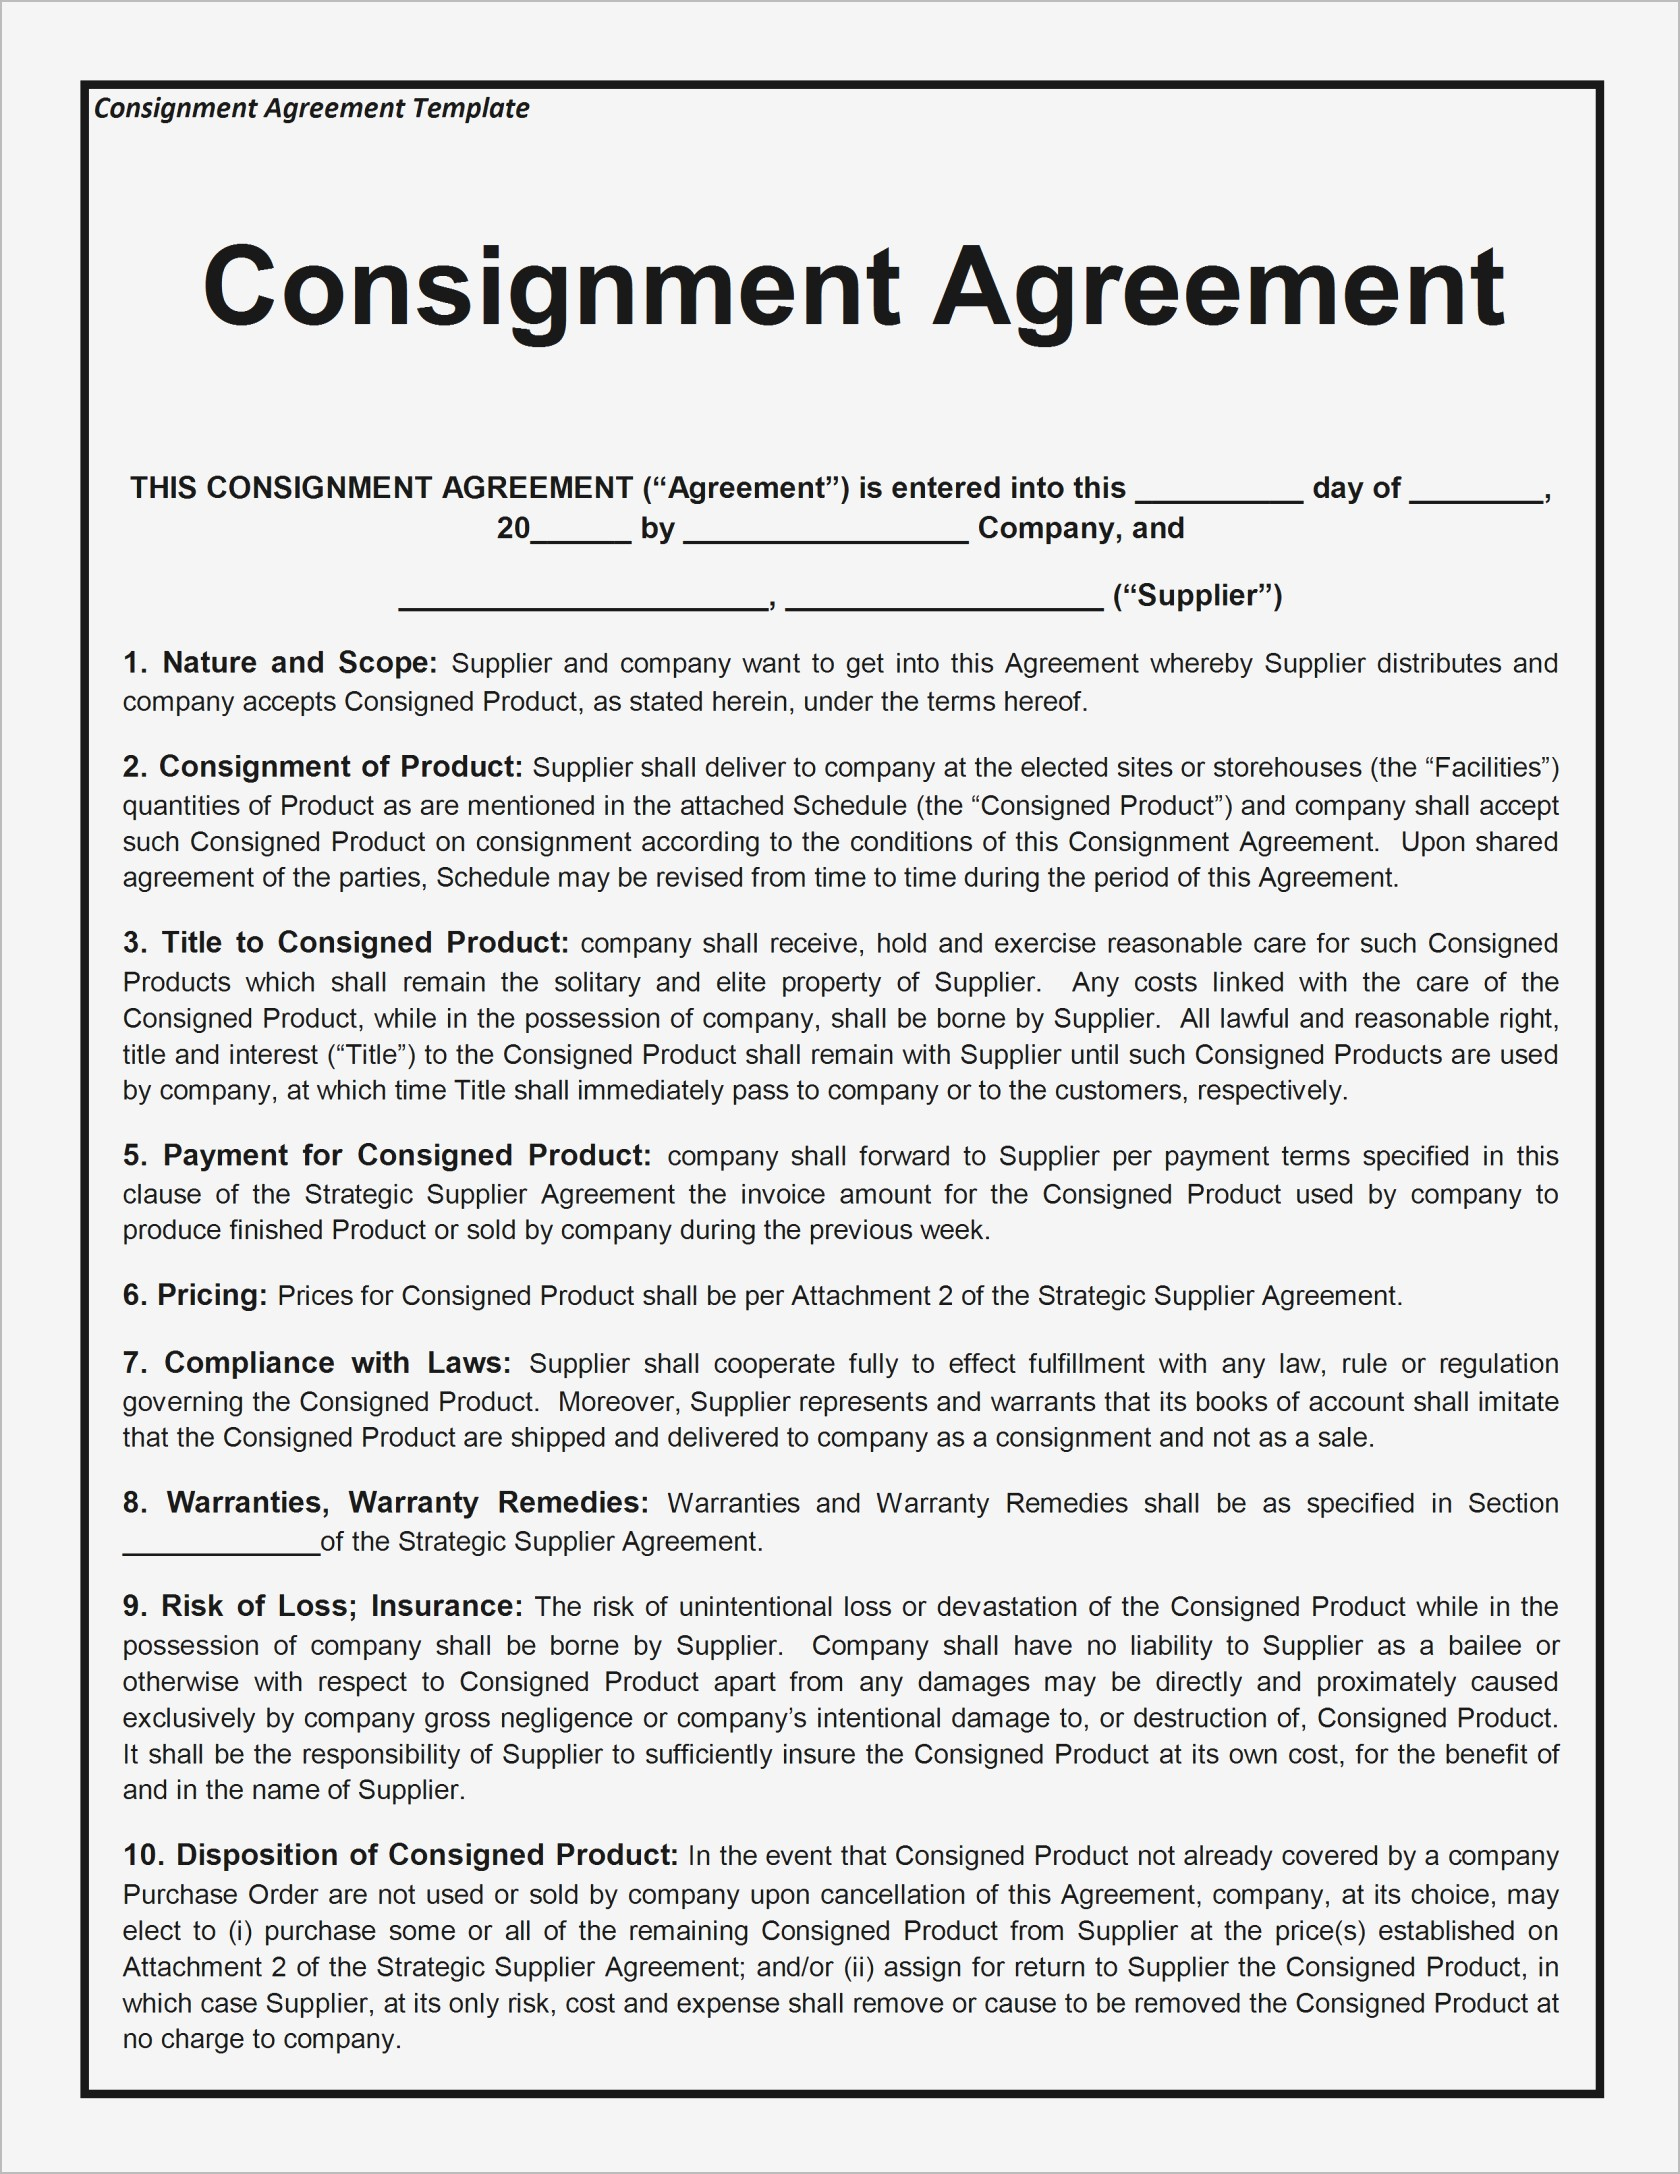 Consignment Letter Template - Consignment Agreement Template Samples